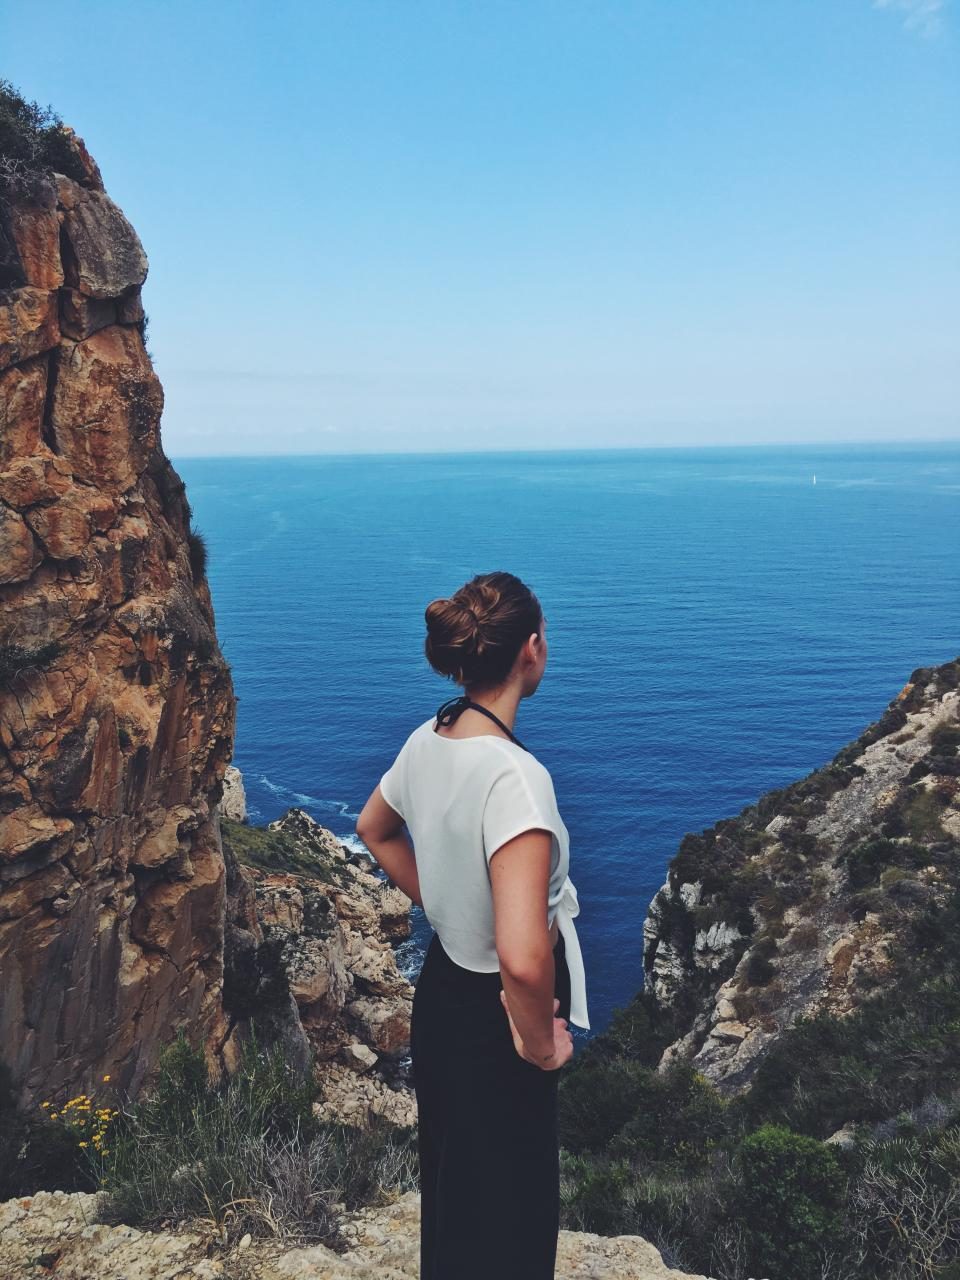 woman girl lady people back stand cliff style fashion outdoors travel mountains rocks bushes plants coast shore water sea ocean